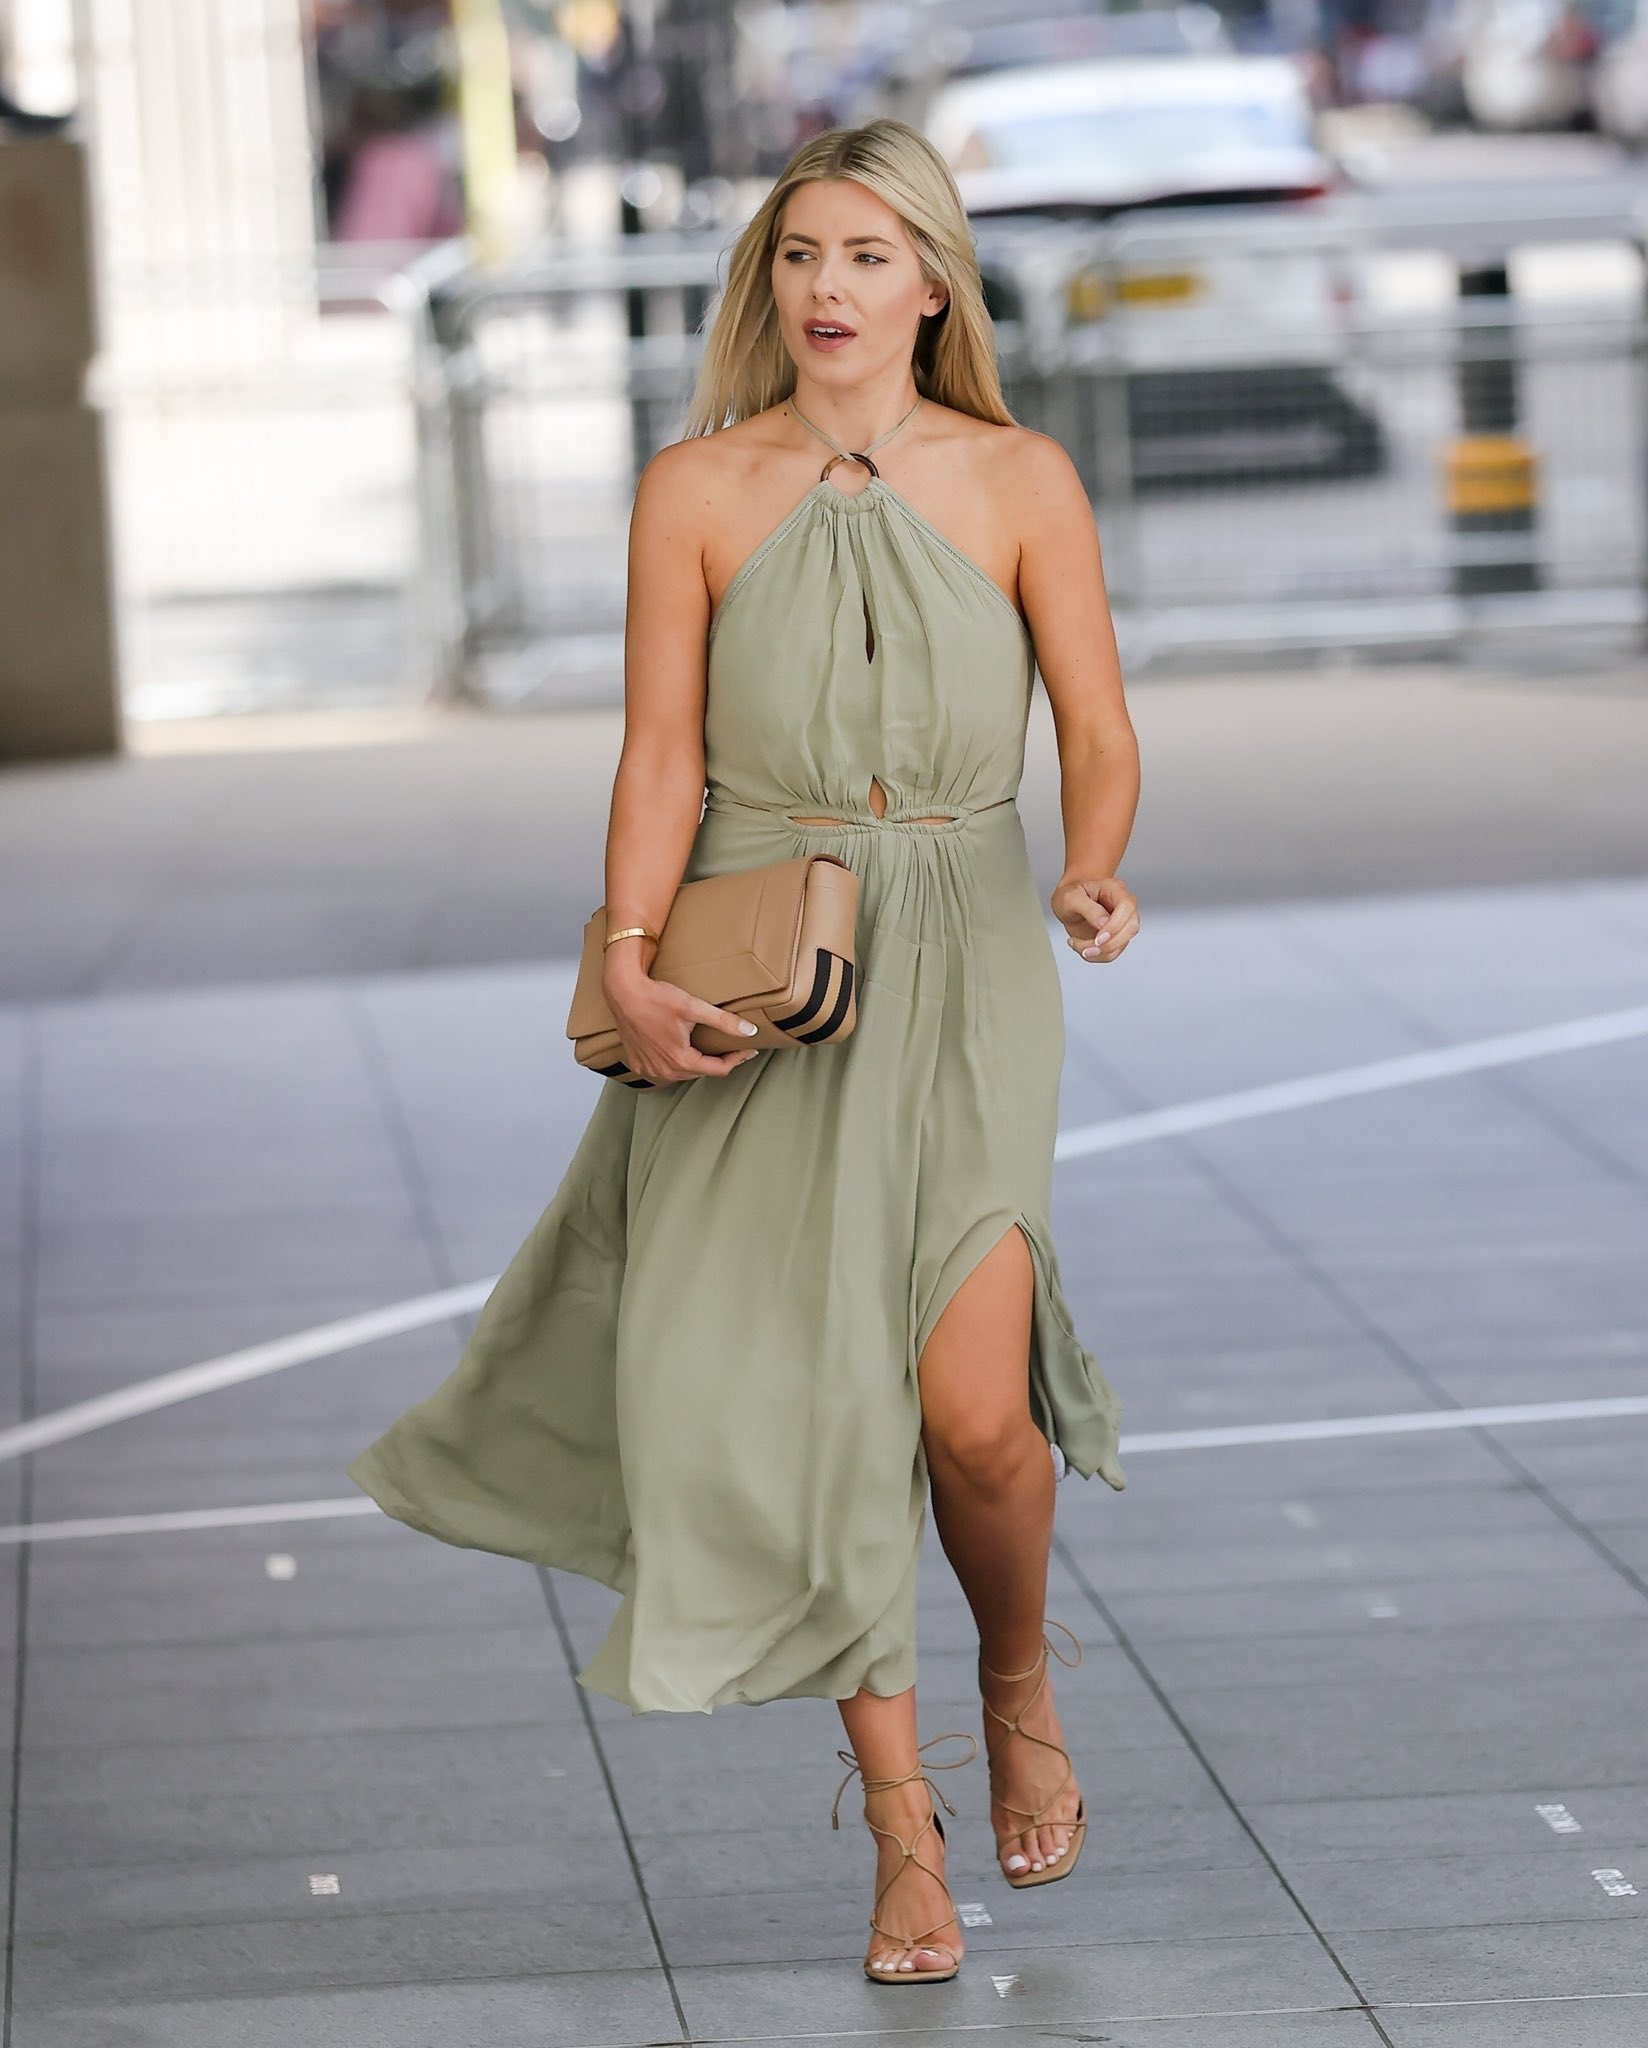 Mollie King shows off her bronzed legs in a summer-ready khaki maxi dress as she arrives at Broadcasting House for her BBC Radio 1 show